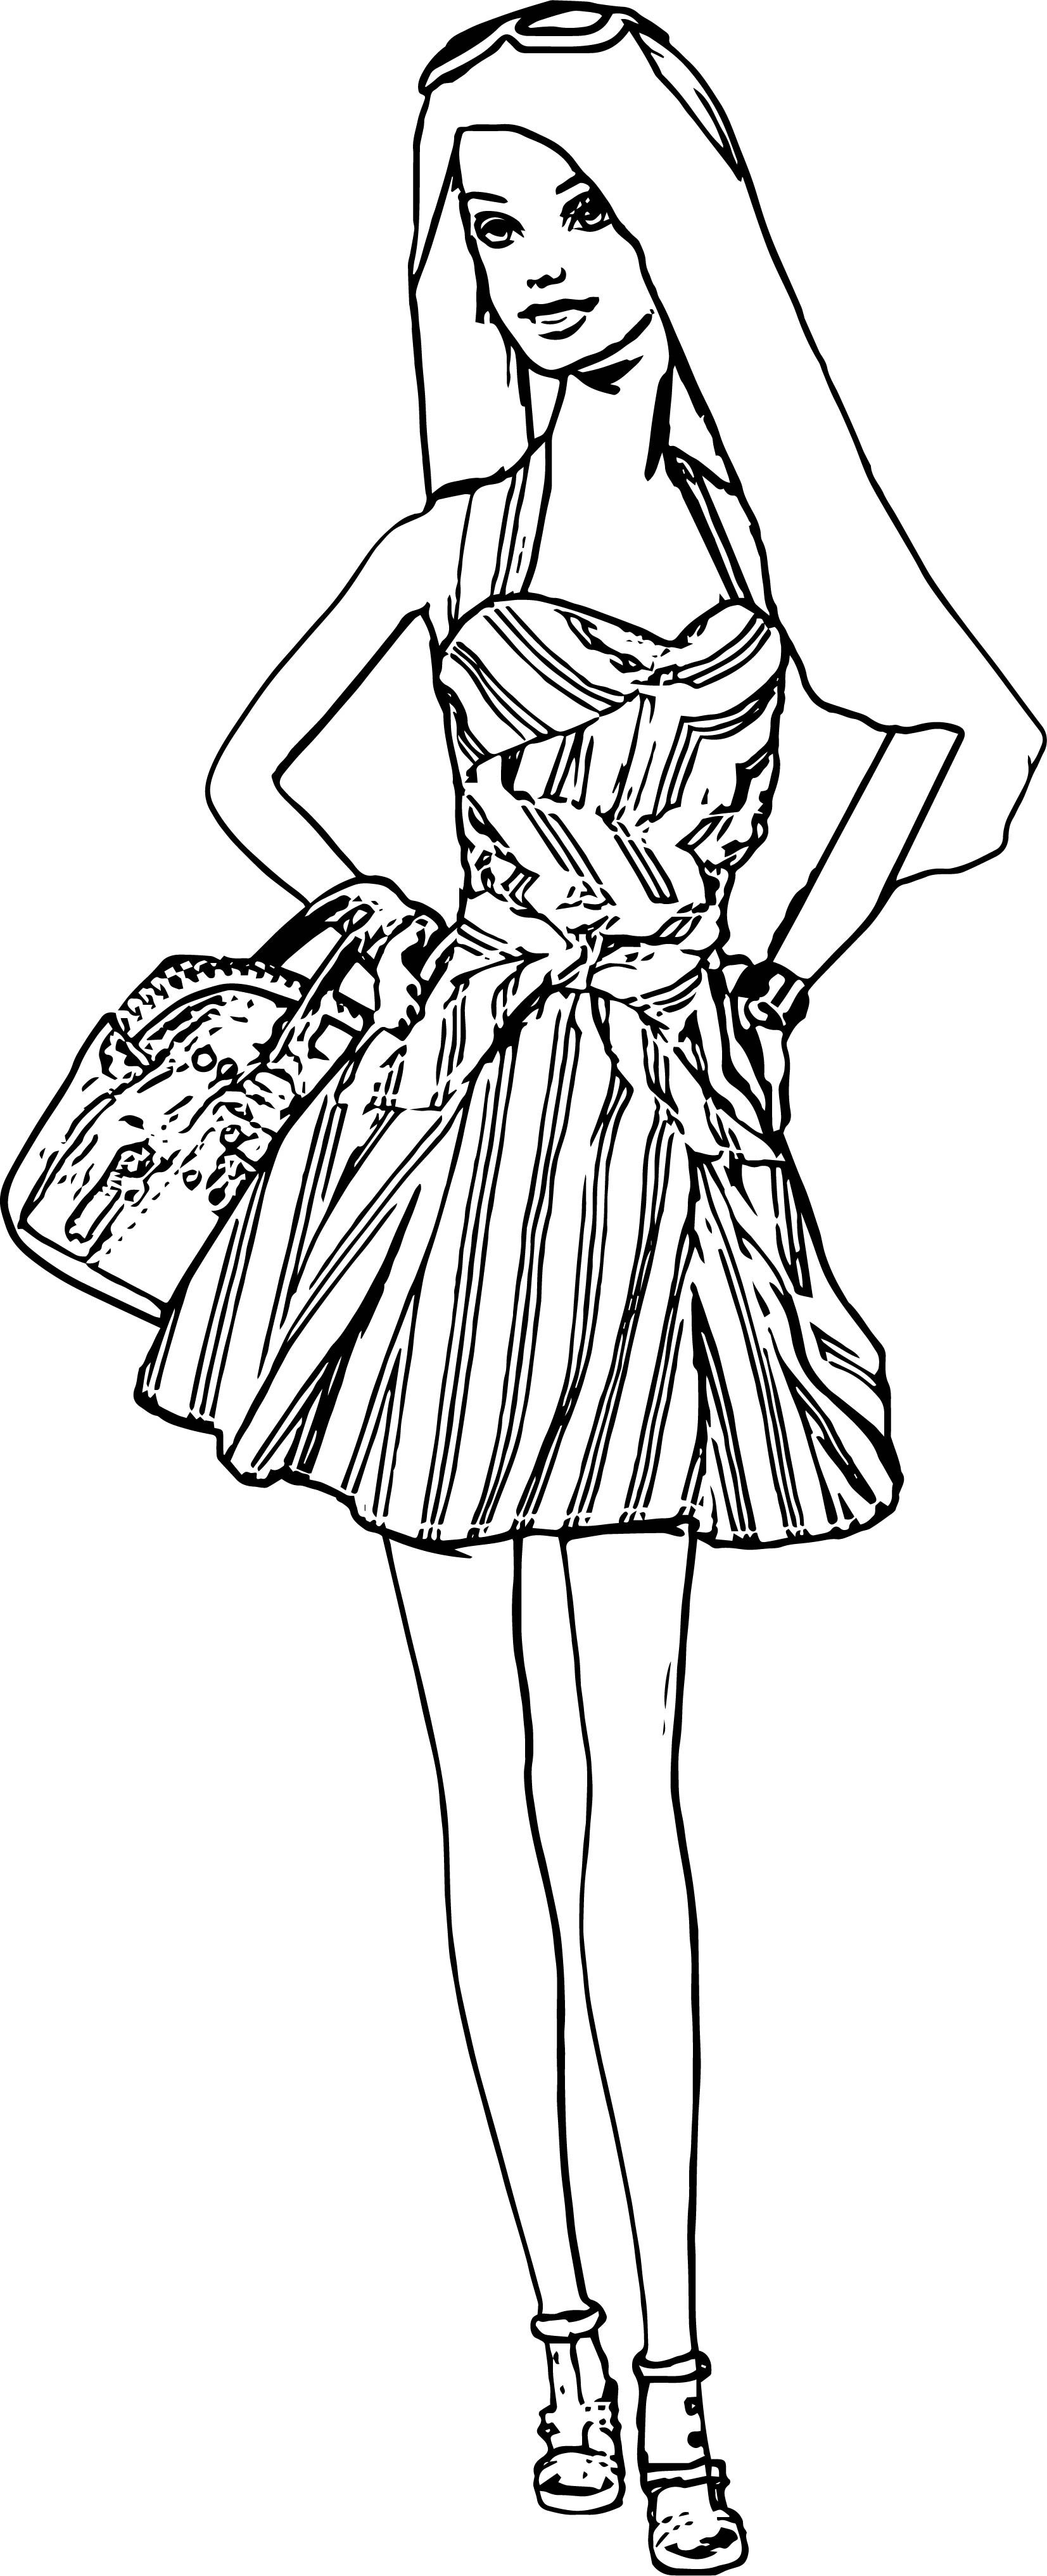 New Barbie Coloring Page Wecoloringpage Com